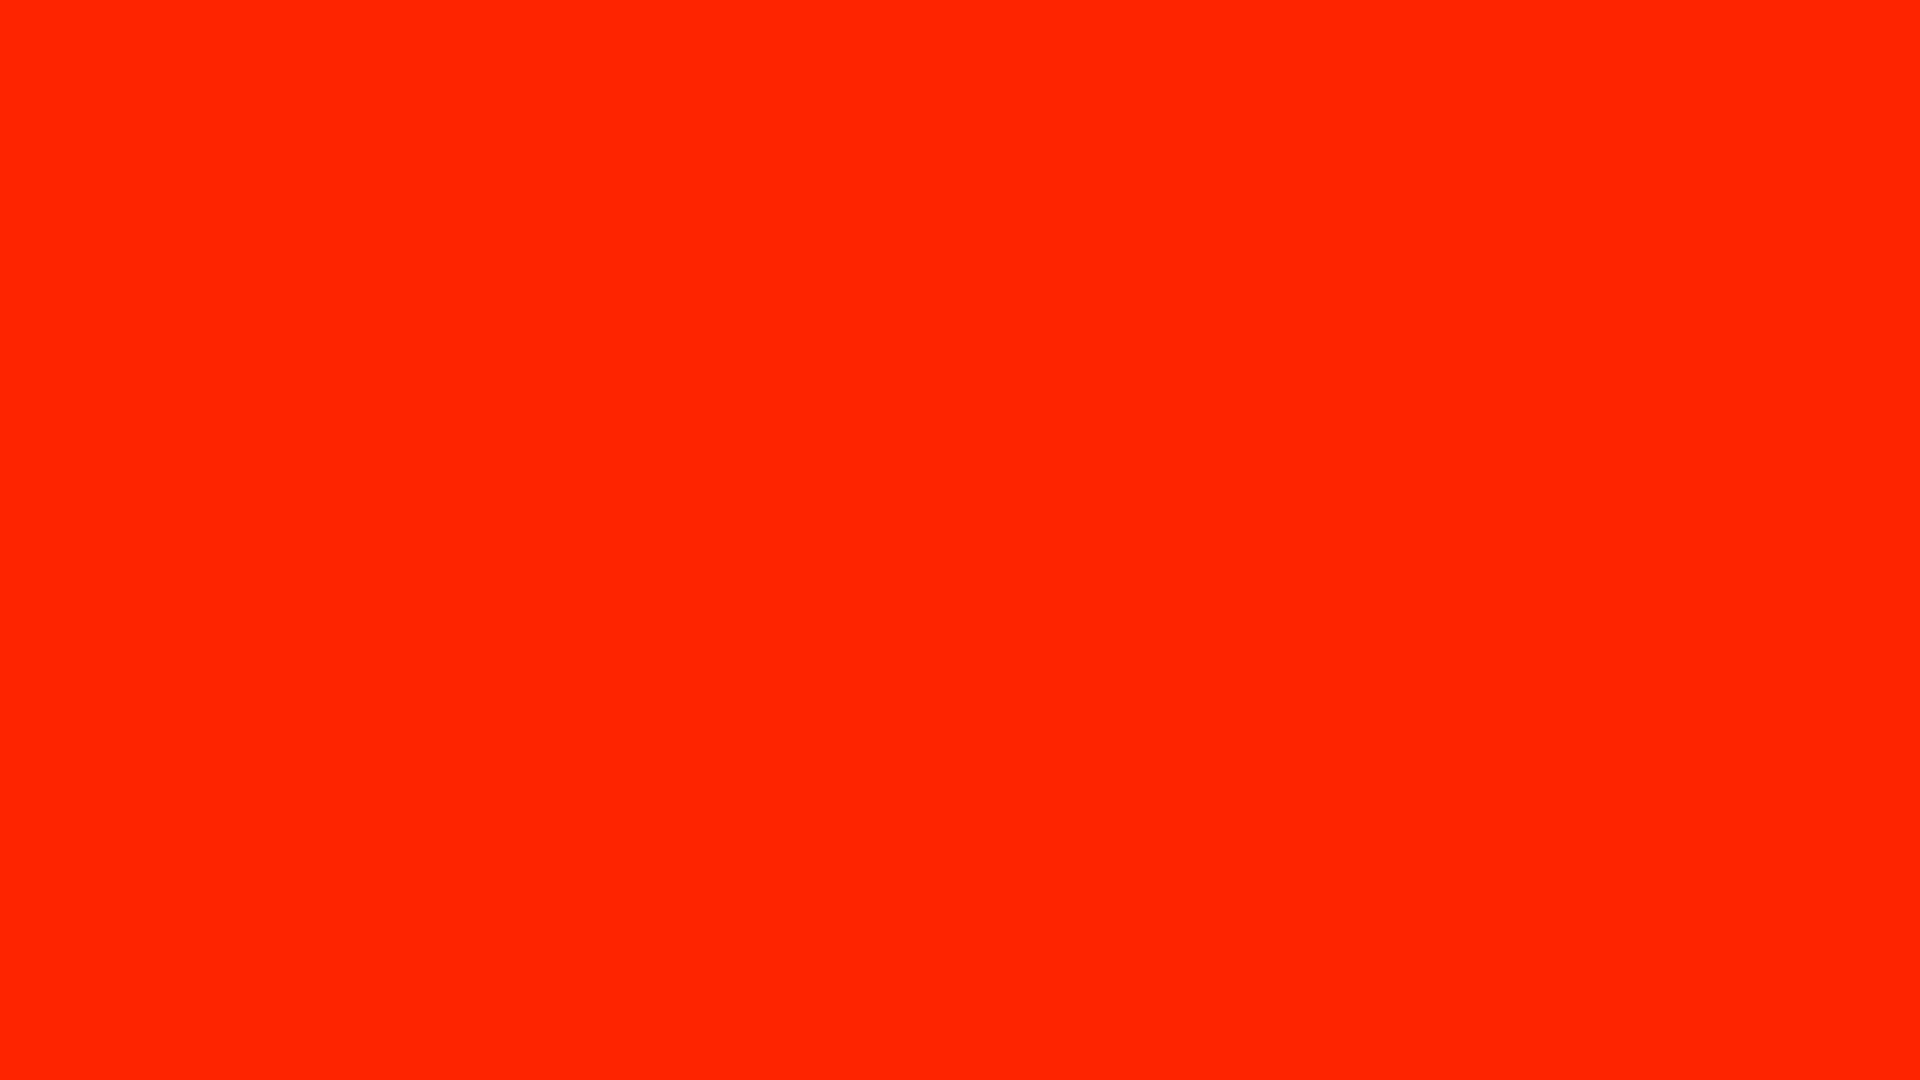 1920x1080 Scarlet Solid Color Background